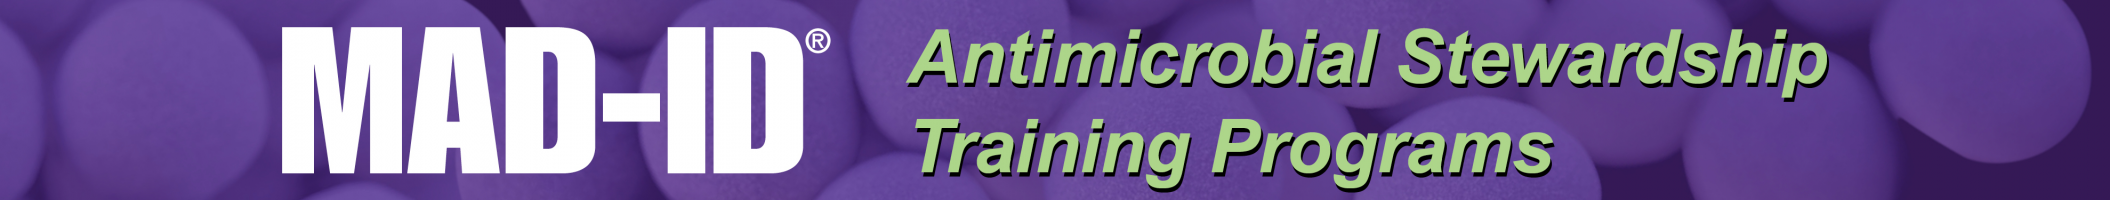 MAD-ID Antimicrobial Stewardship Training Program